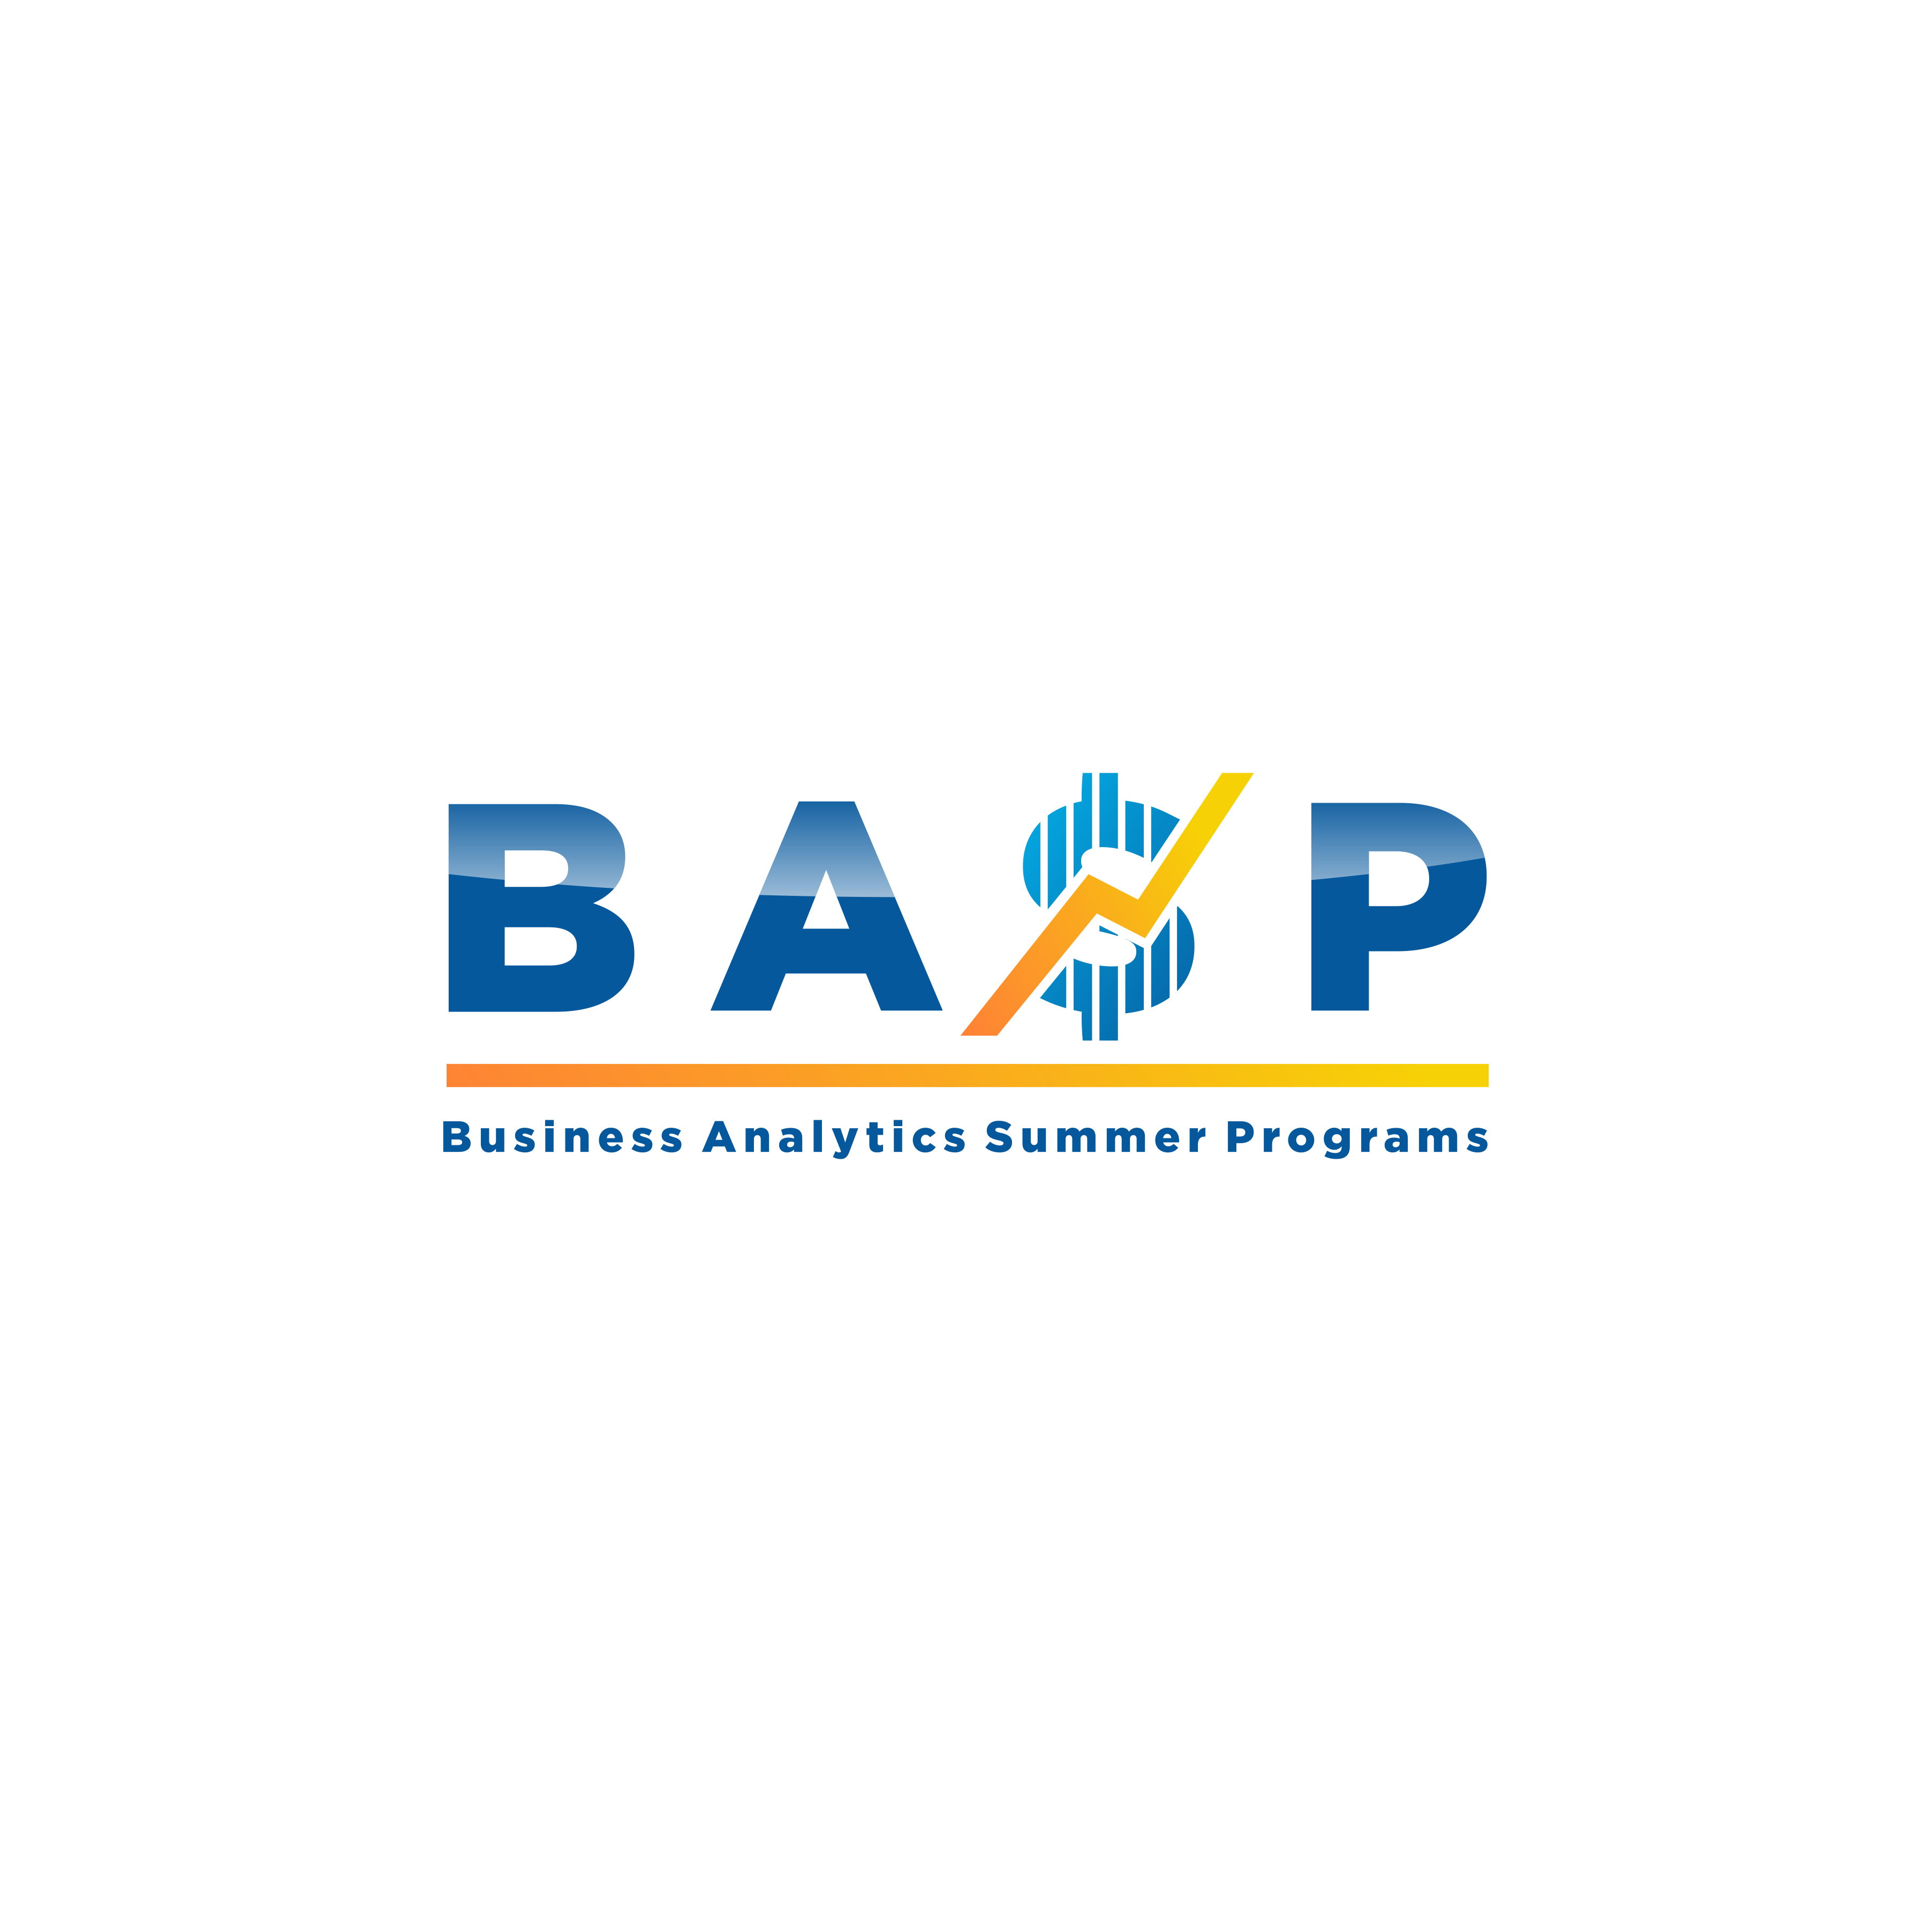 A logo to attract High School Students interested in a summer program for Business Analytics